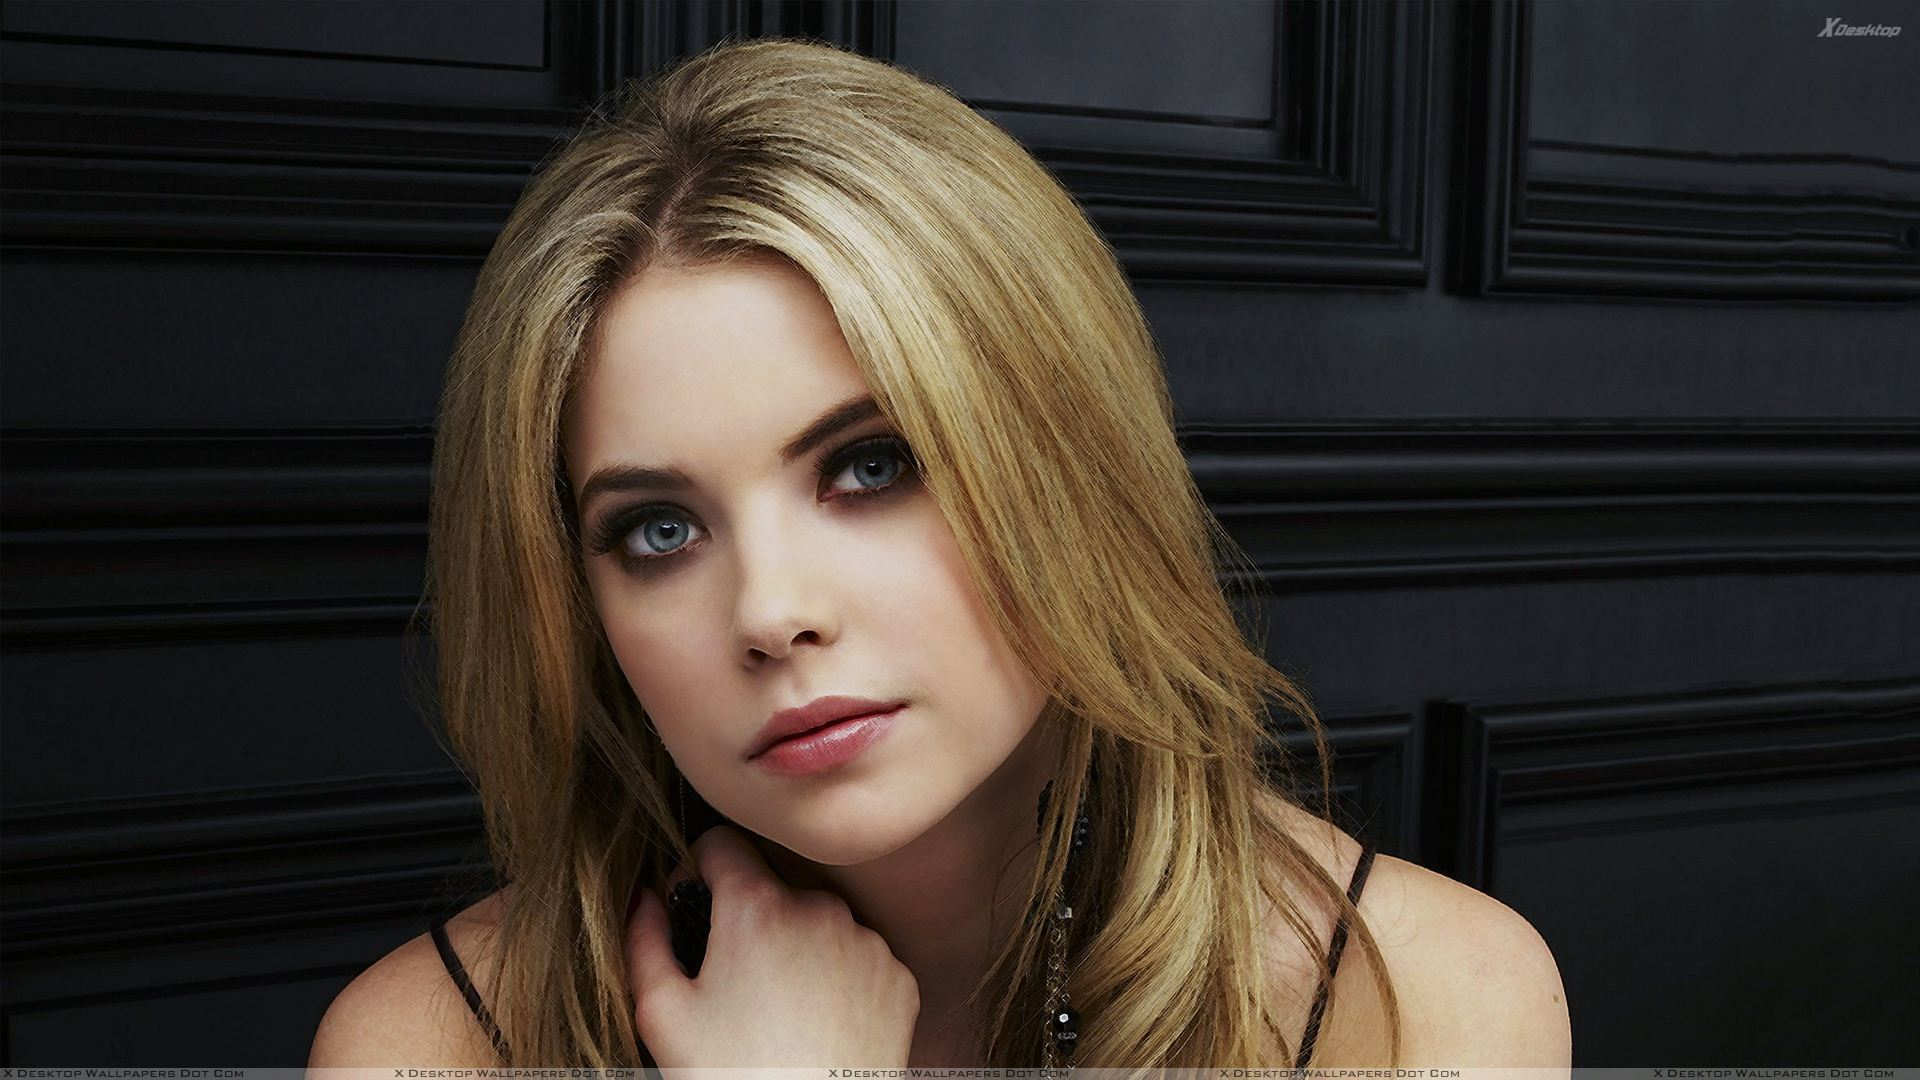 ashley benson wallpapers, photos & images in hd